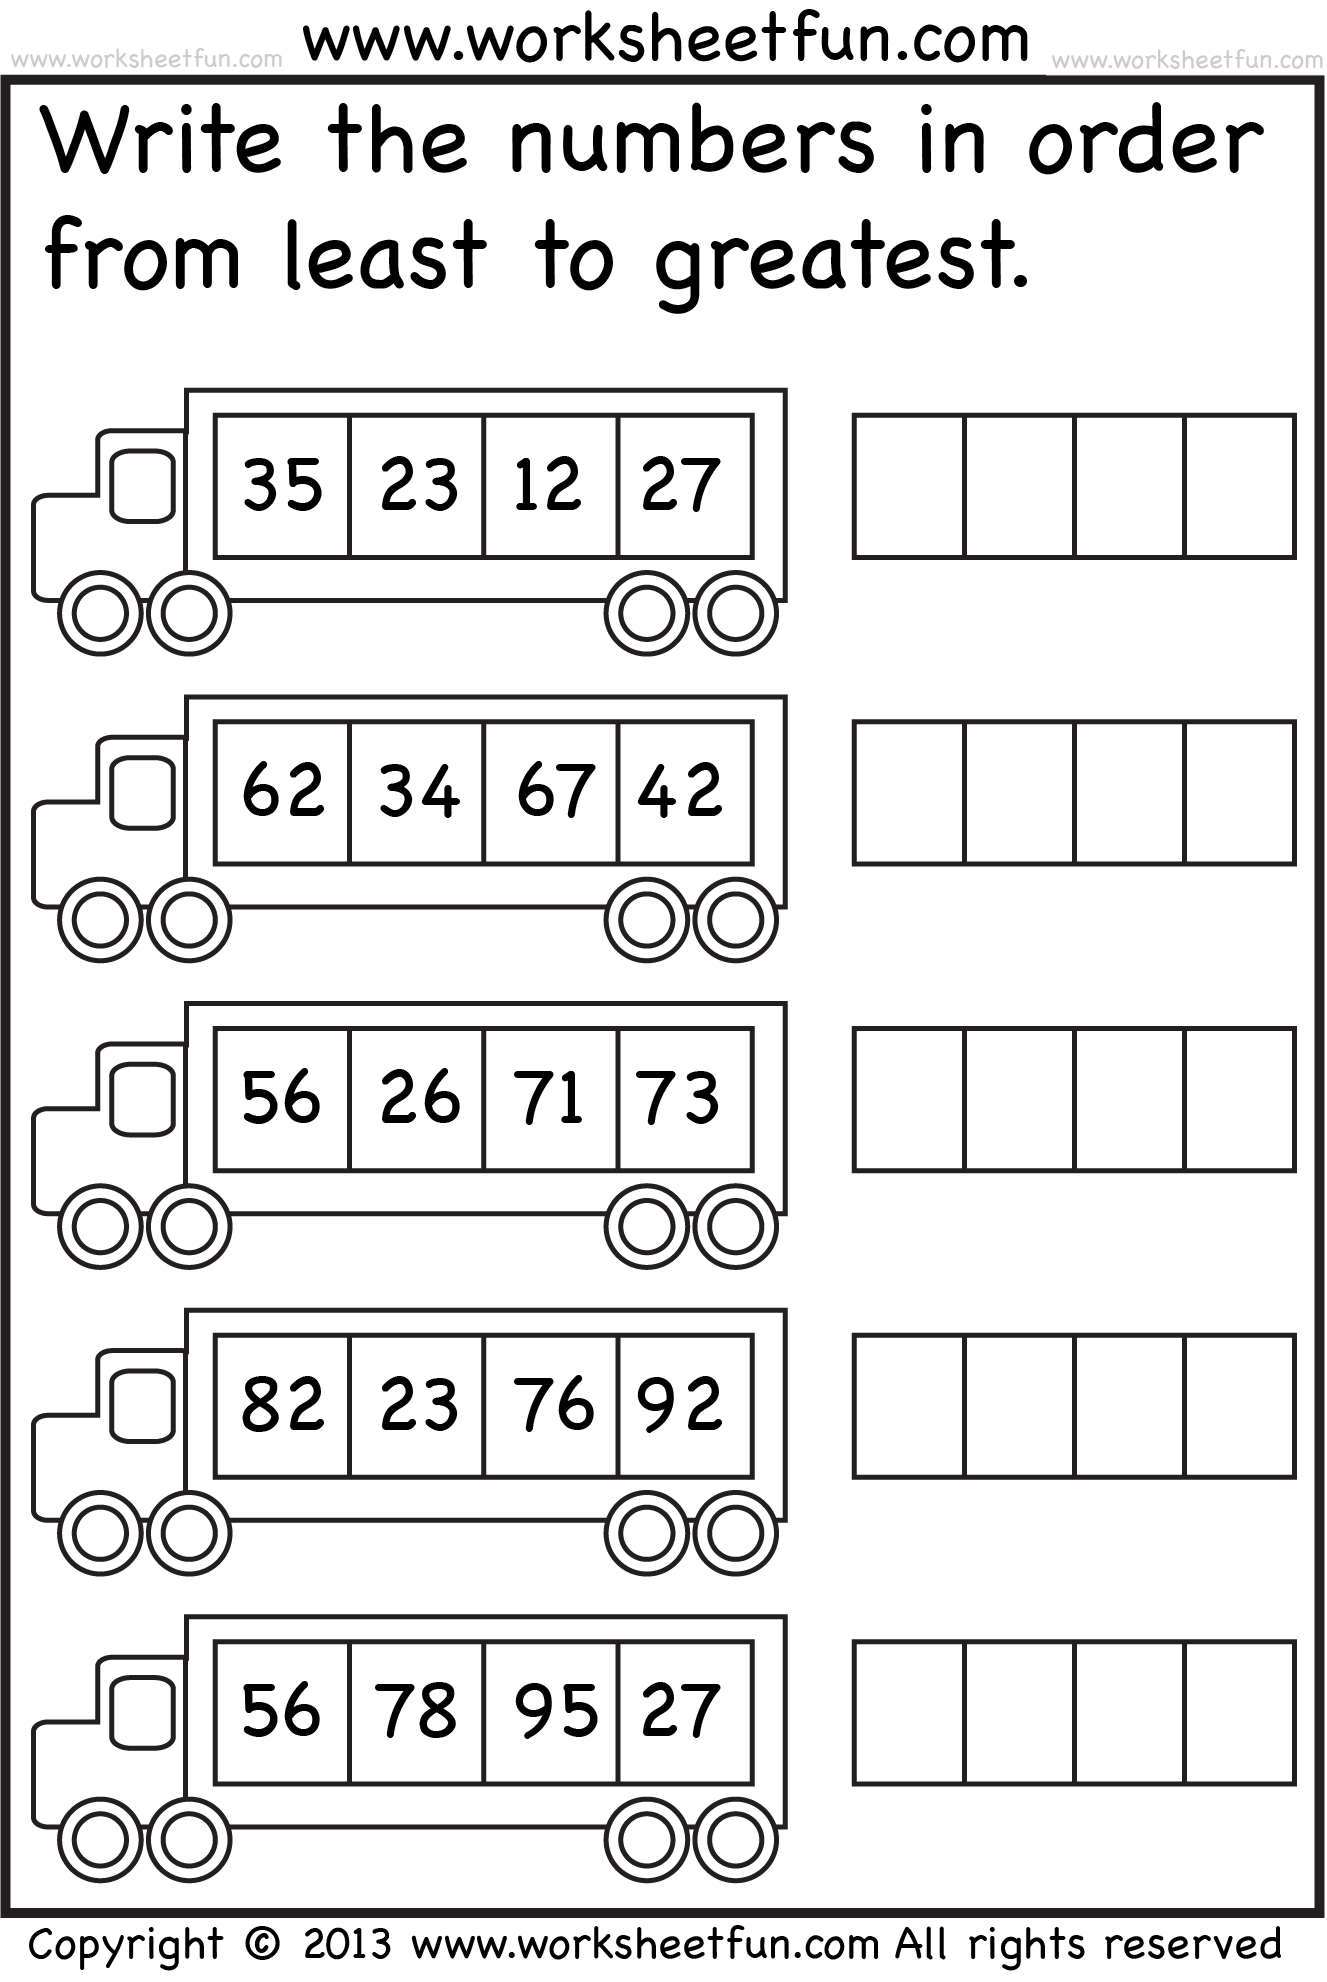 Arranging Fractions From Least To Greatest Worksheets ...